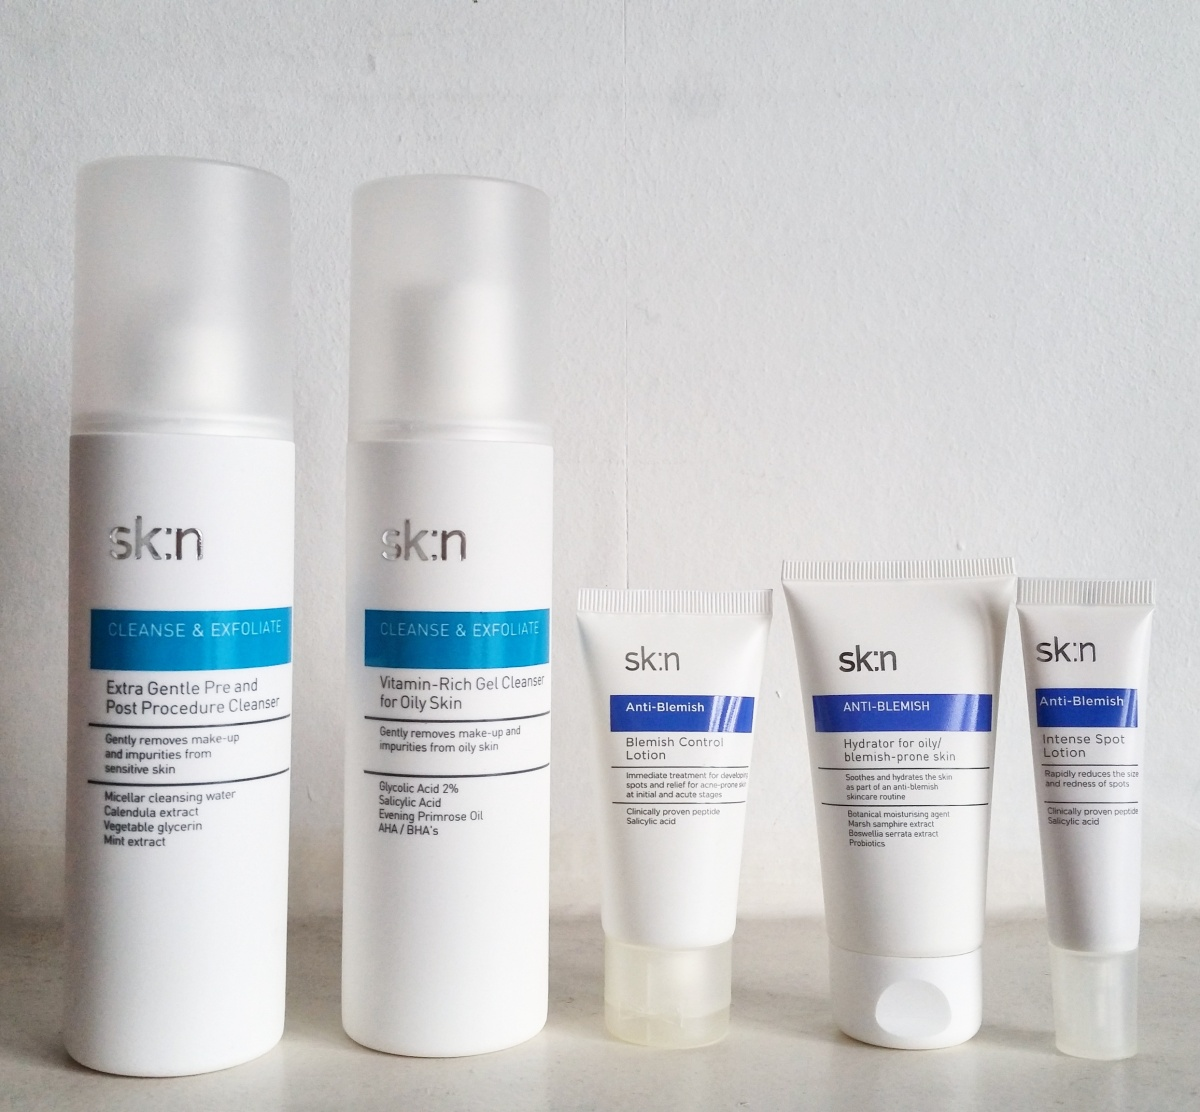 Review: Sk:n products for oily and blemish-prone skin